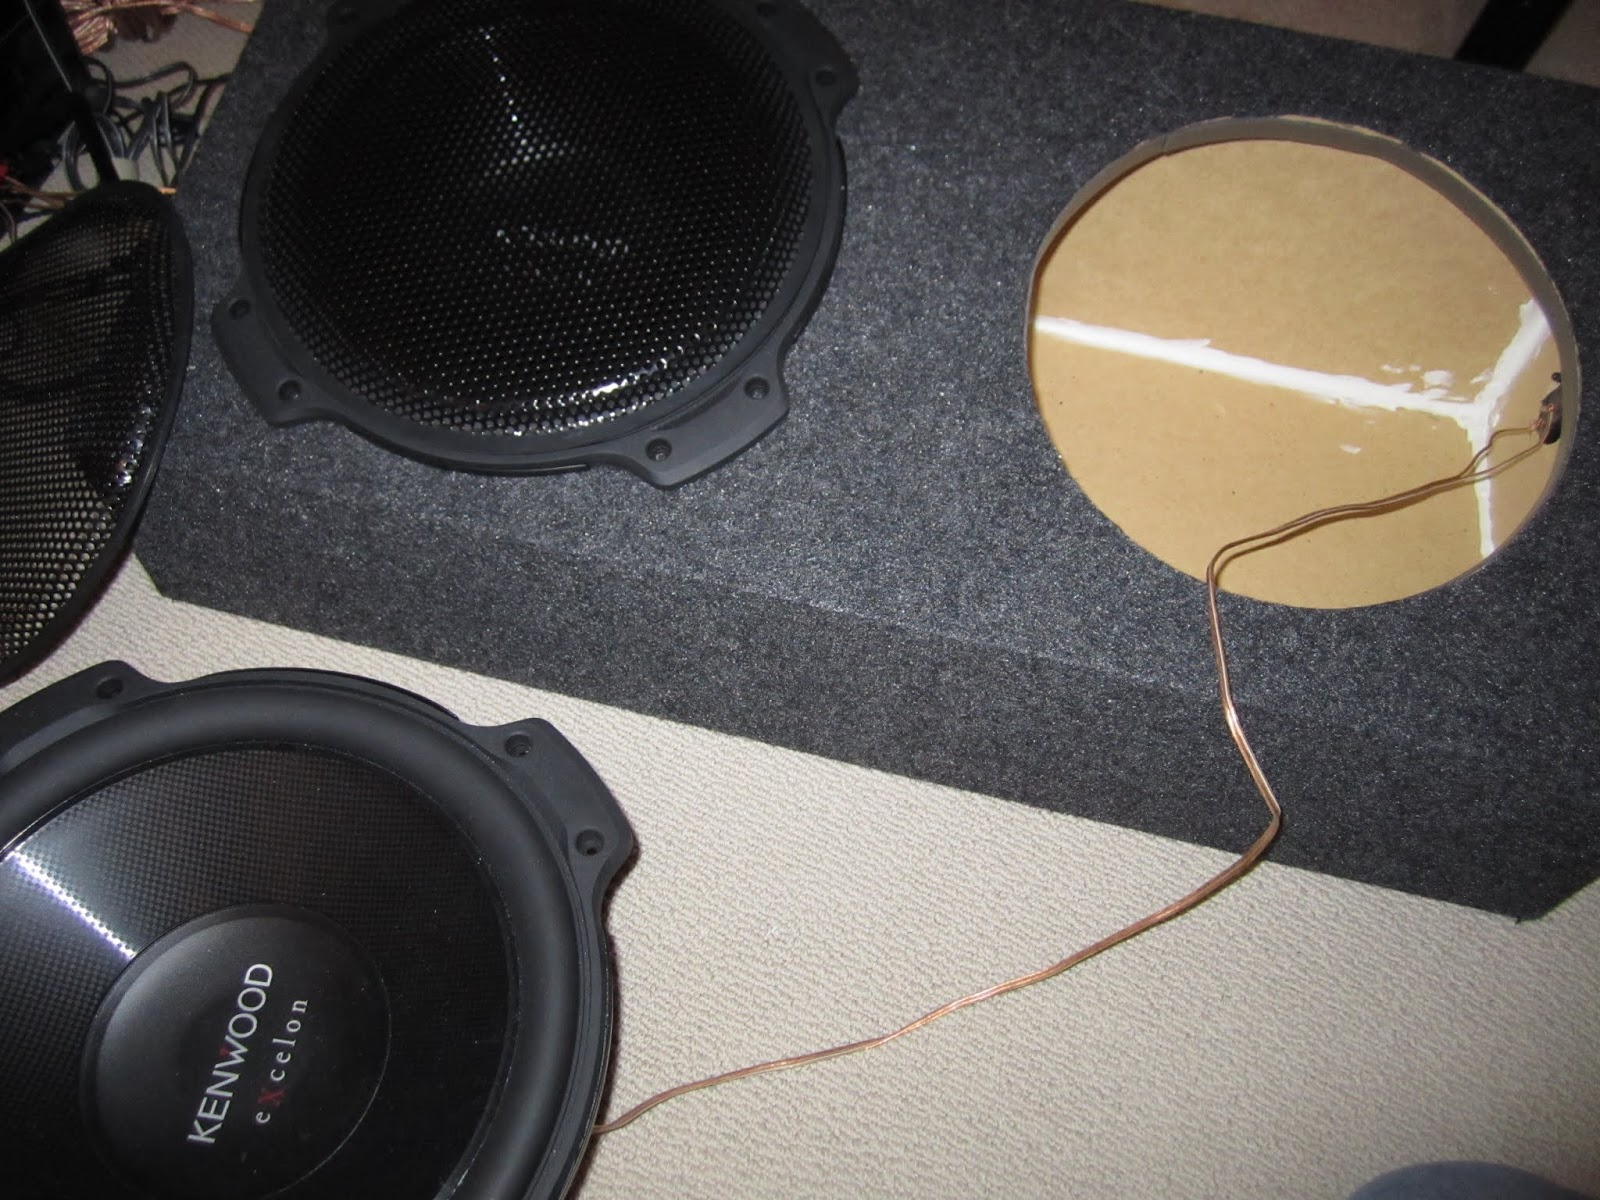 X5 Custom Subwoofer 2 Box Wiring Bunnyshock Speakers 21 Wired Up Right Enclosure To Kenwood